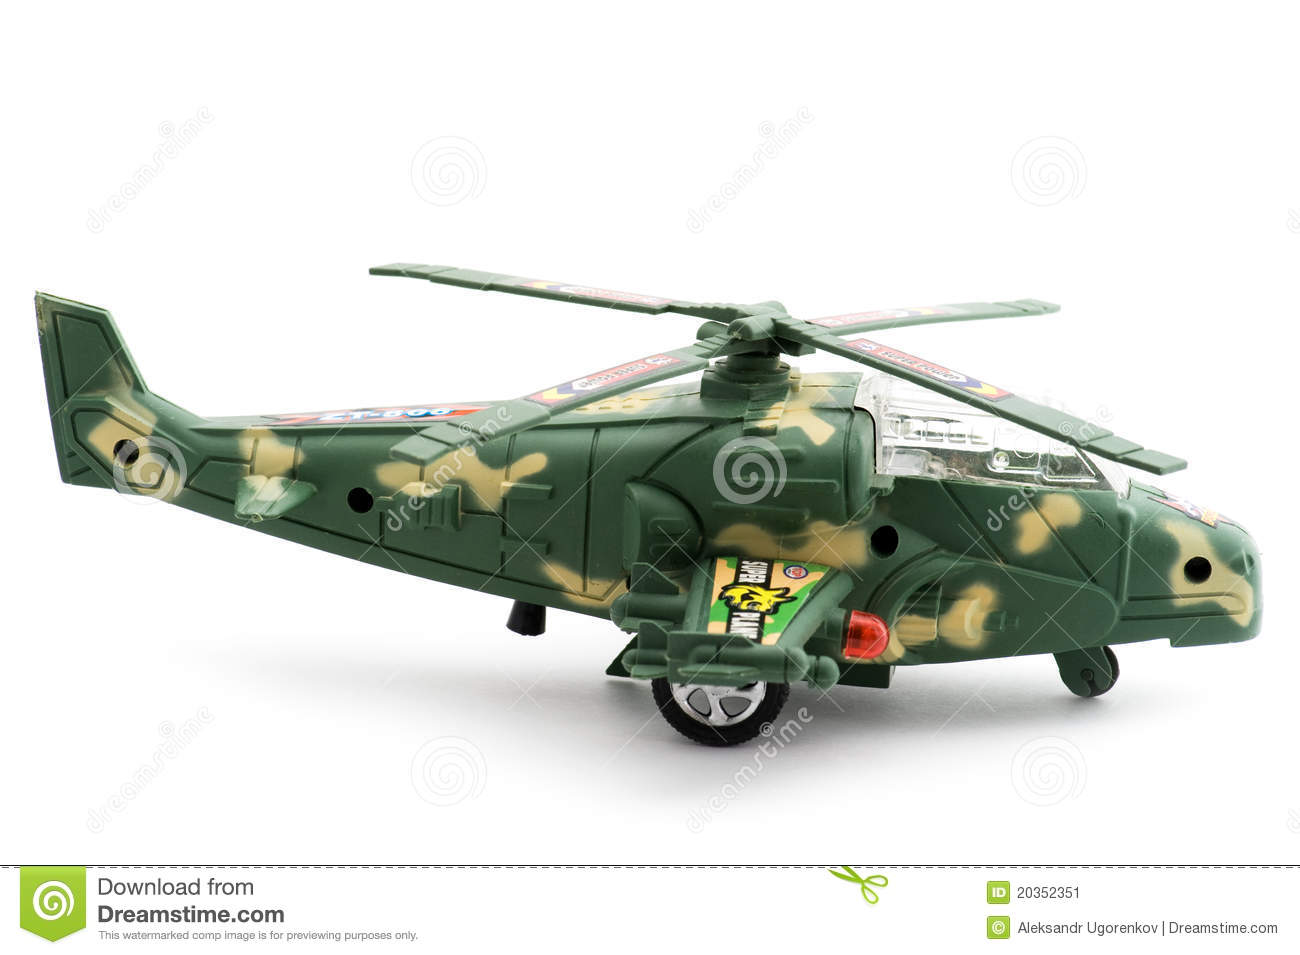 toy helicopter propeller with Stock Image Toy Military Helicopter Image20352351 on Product detail further Rc Planes furthermore Make Pinwheel Printables further 2CH Mini RC Helicopter Robot in addition Paper airplanes.